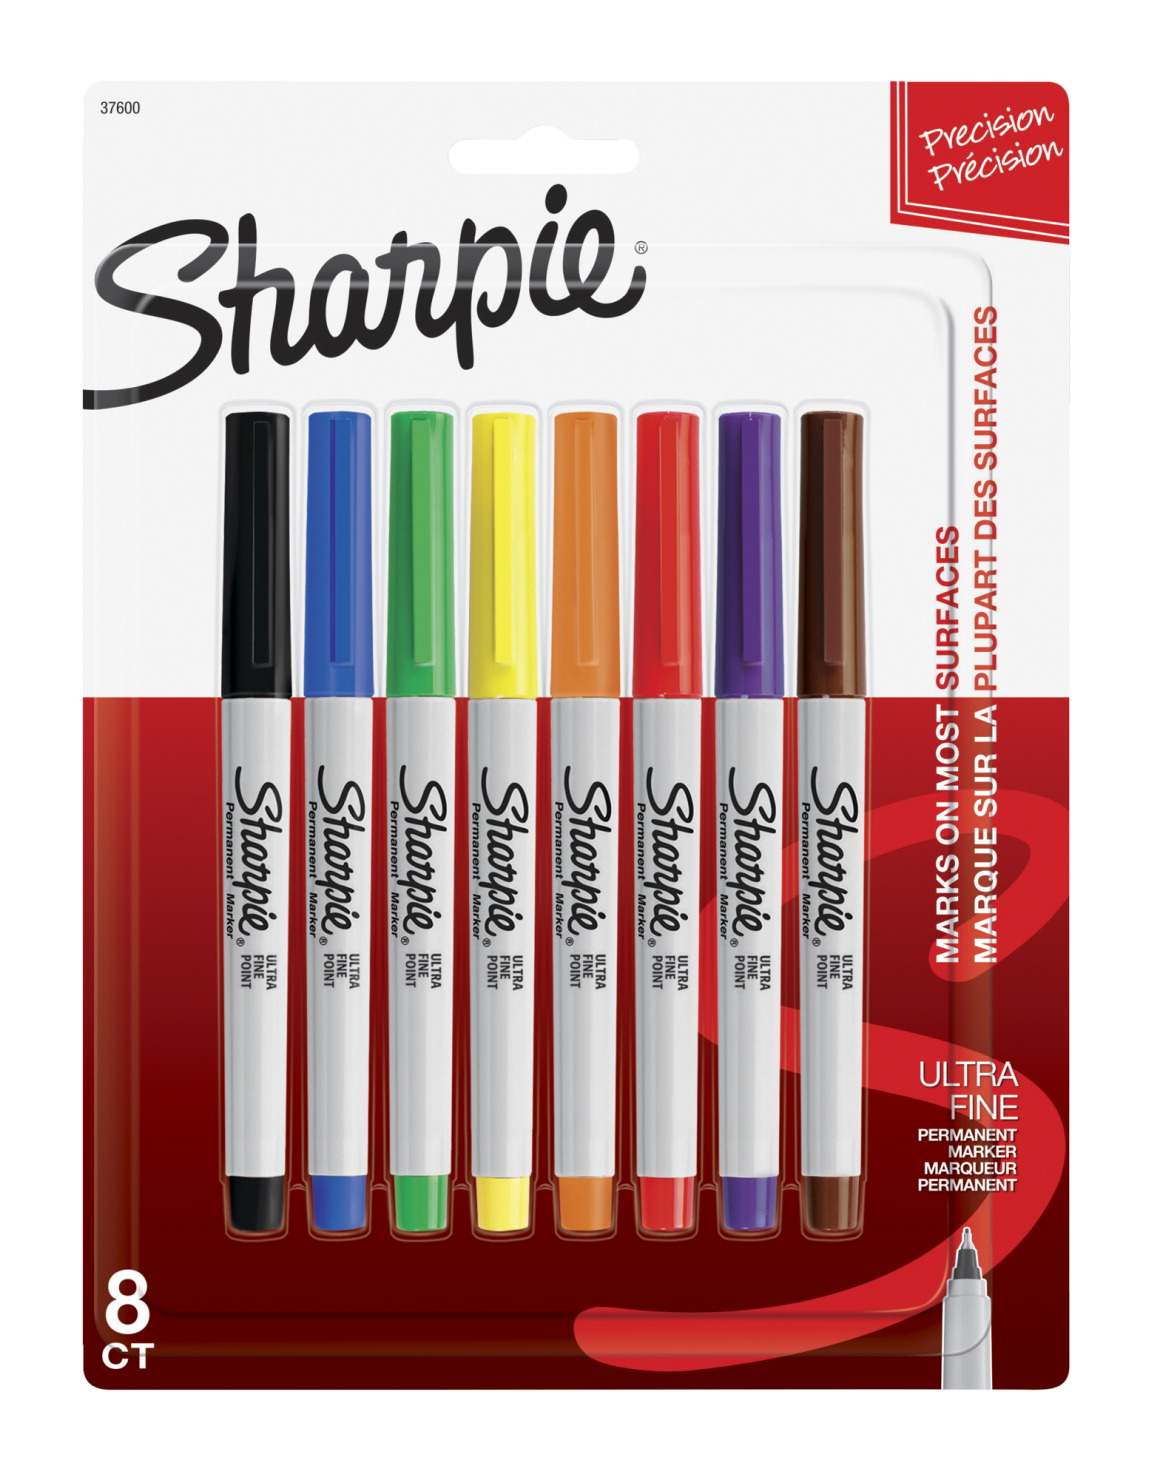 Sharpie Ultra Fine Point Permanent Marker, Assorted, Set of 8